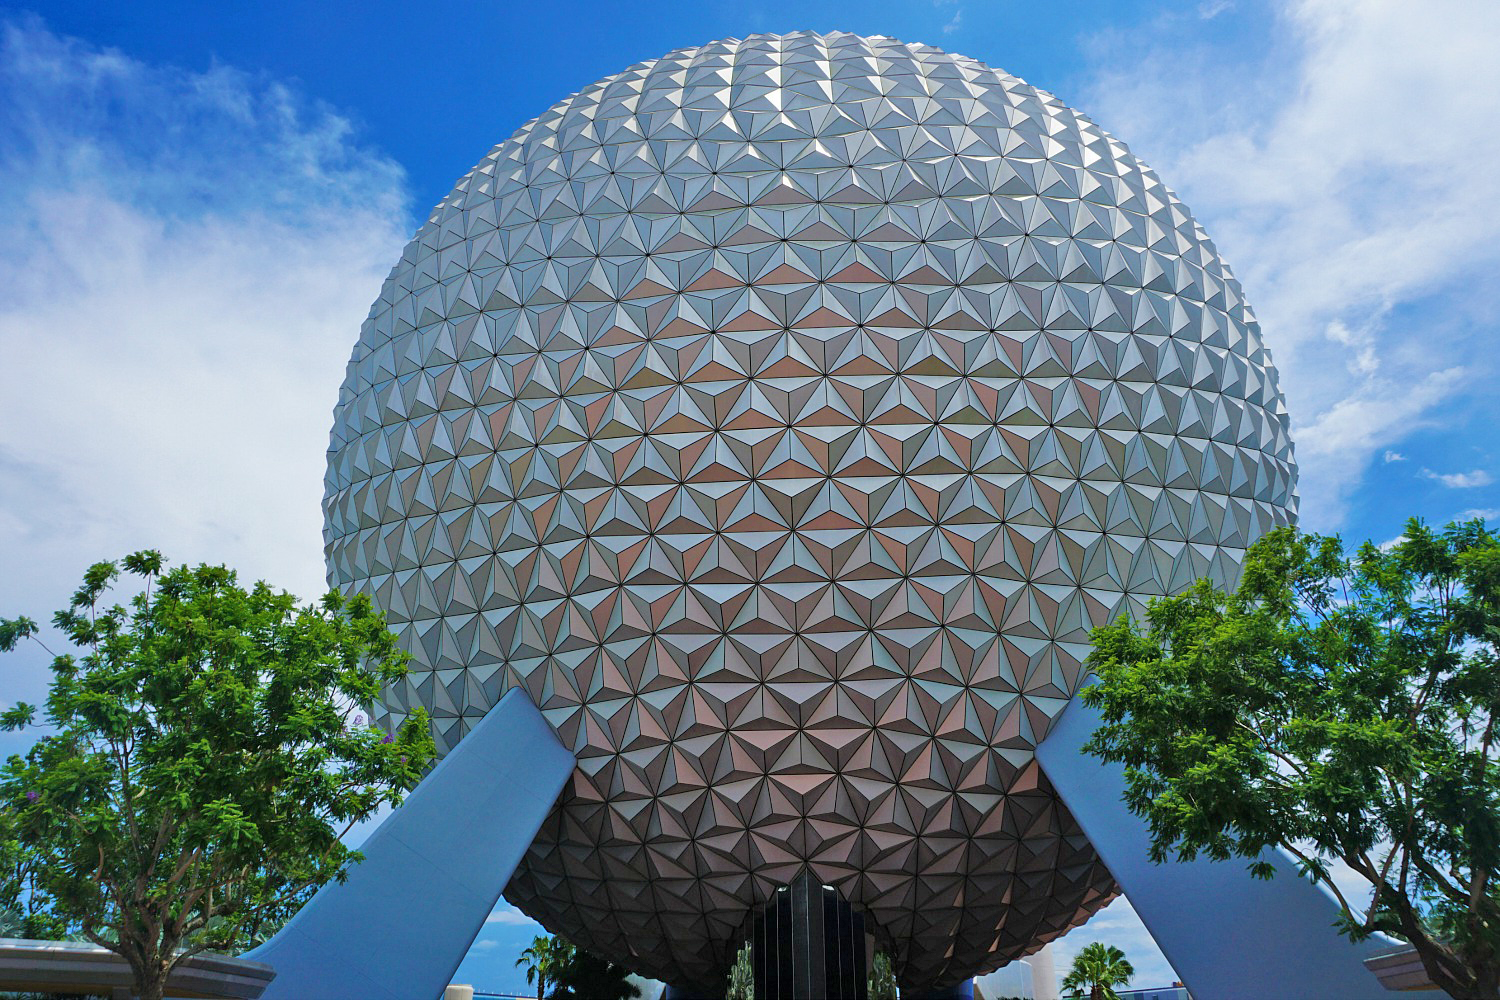 Reasons to visit America - Epcot Florida.